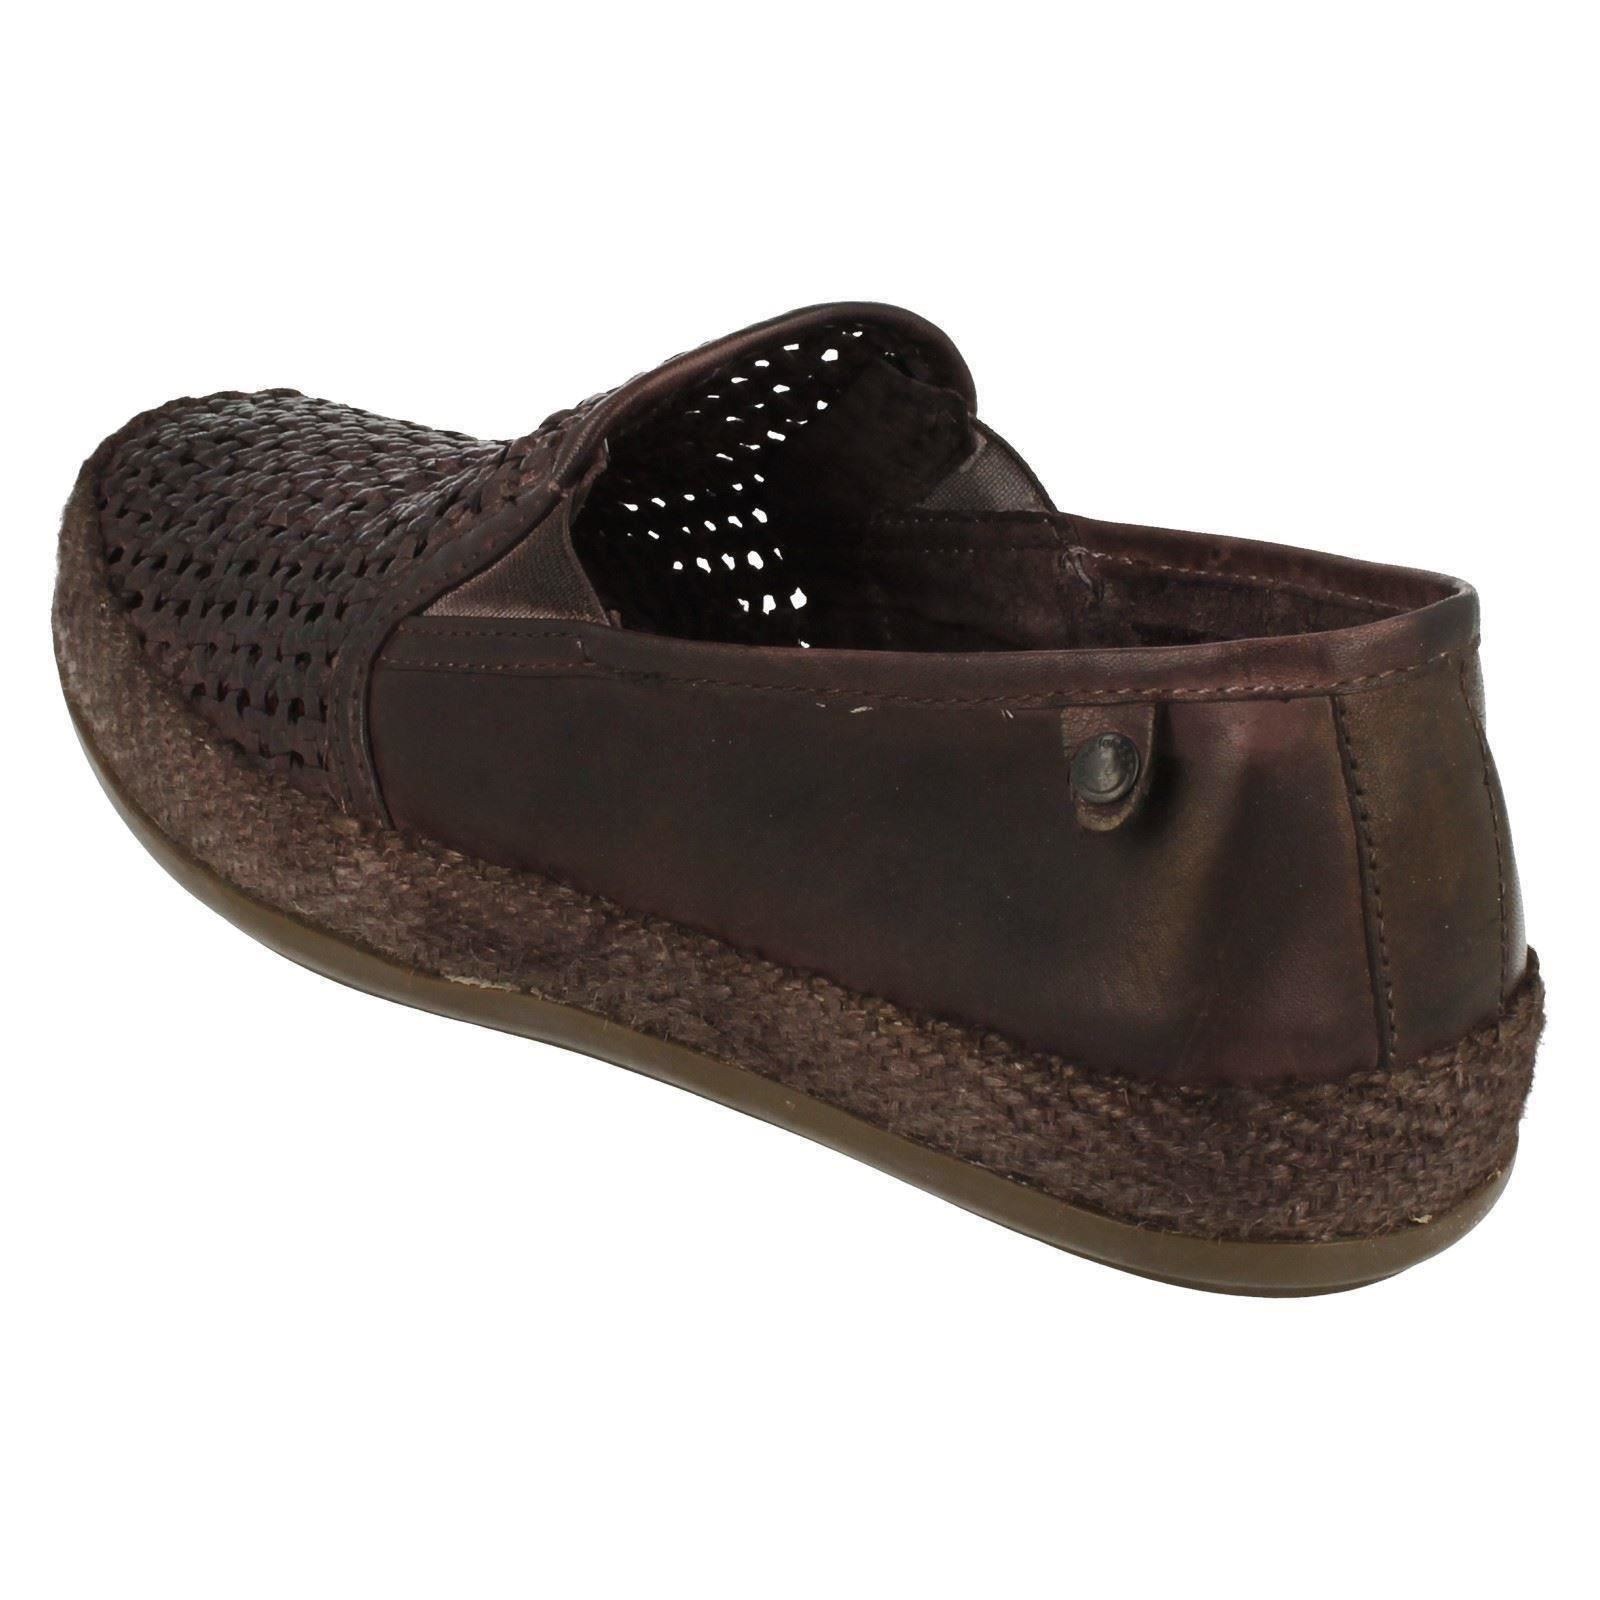 mens base casual slip on woven effect shoes stage